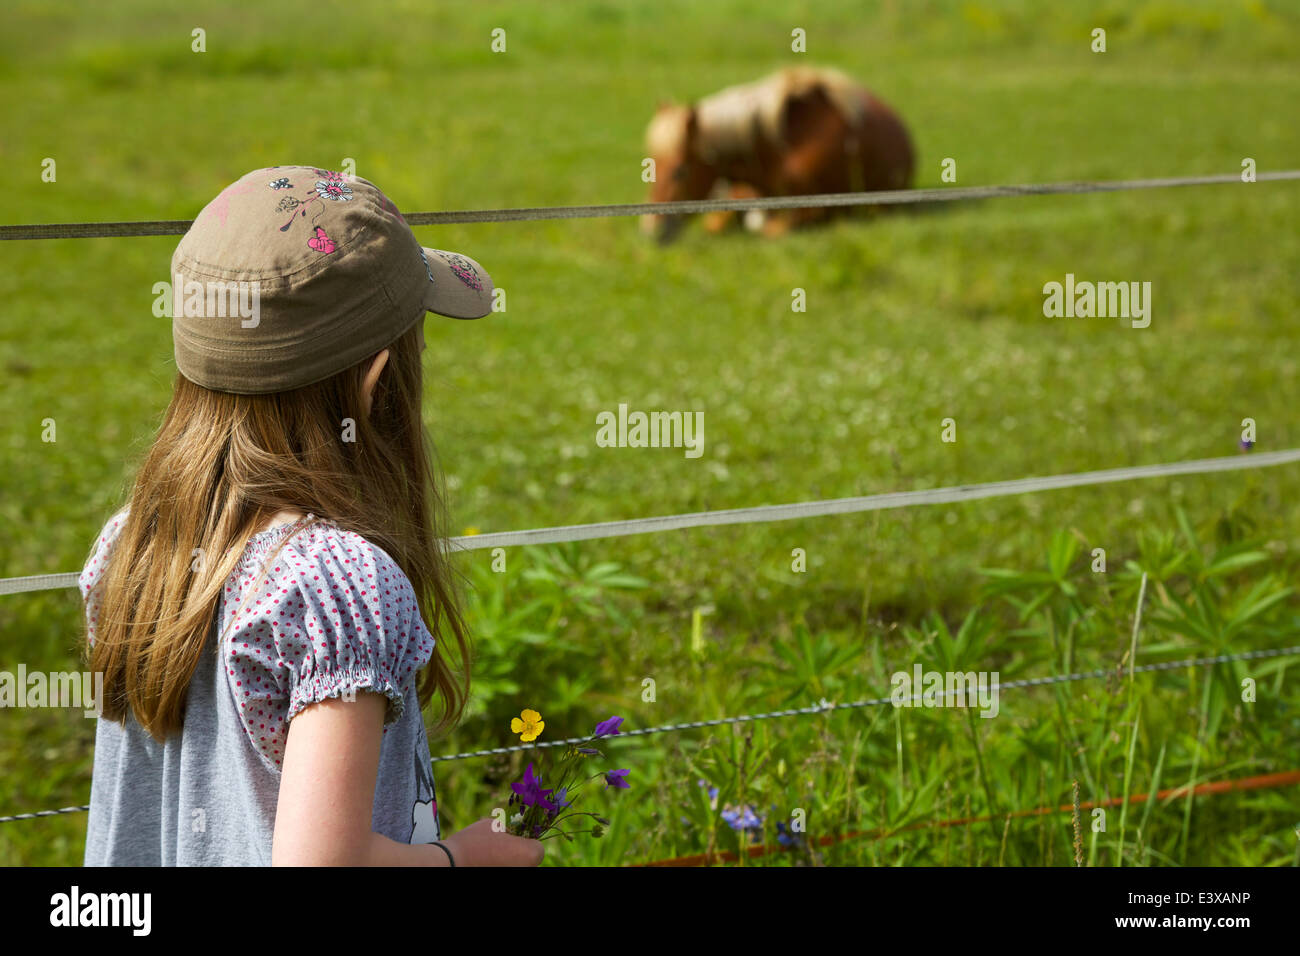 A girl watching a horse in pasture in summer - Stock Image